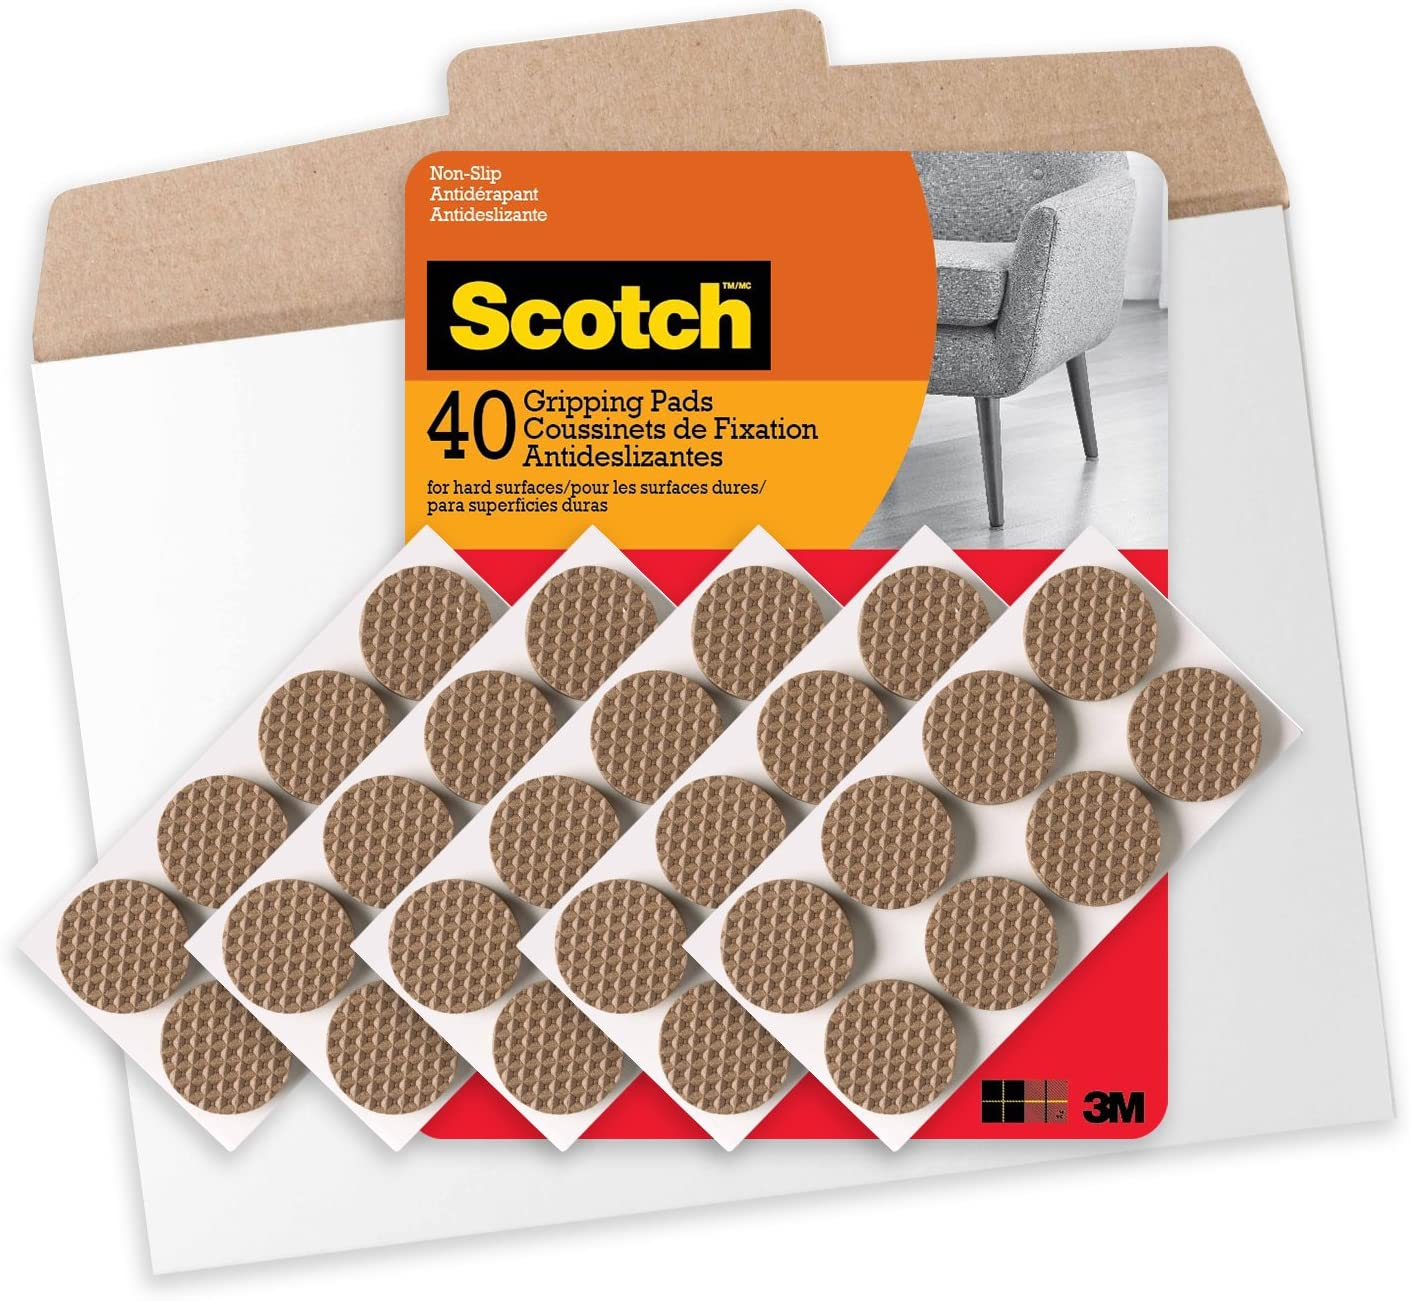 Scotch Mounting, Fastening & Surface Protection 40 Pads, Brown, Gripping Pads in Easy to Open Packaging, 1 Inch